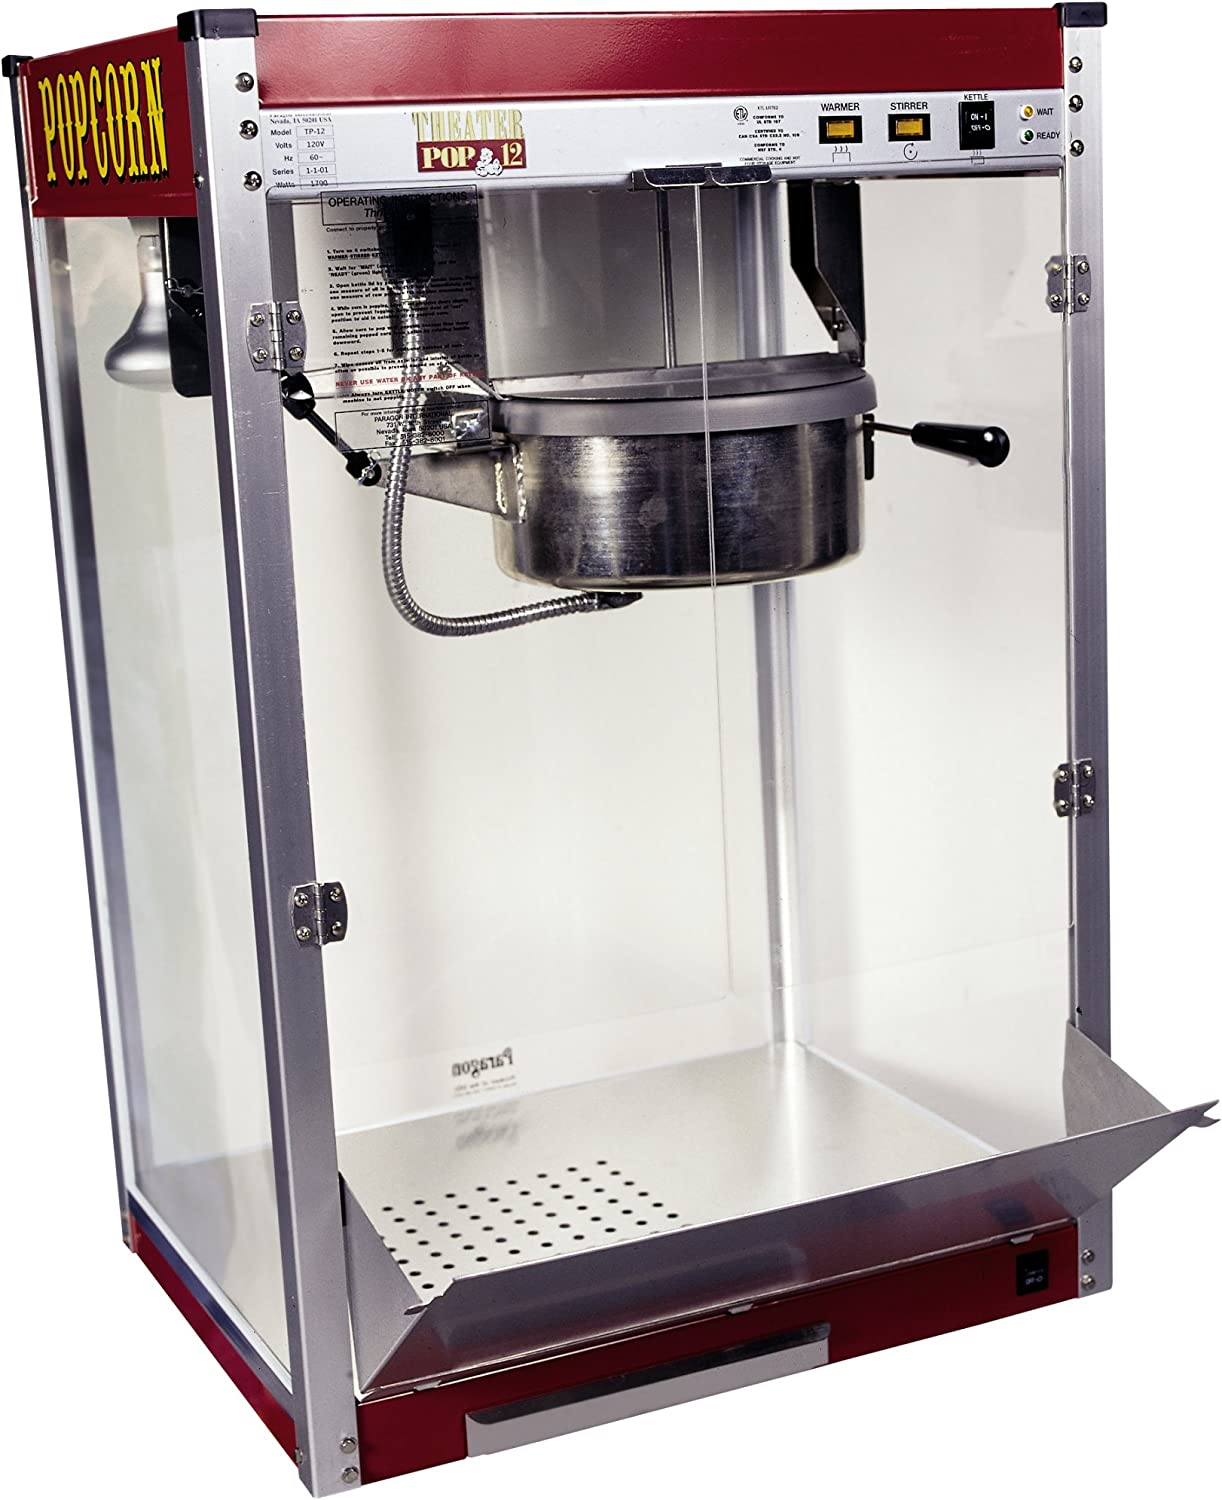 Paragon Theater Pop 12 Ounce Popcorn Machine for Professional Concessionaires Requiring Commercial Quality High Output Popcorn Equipment